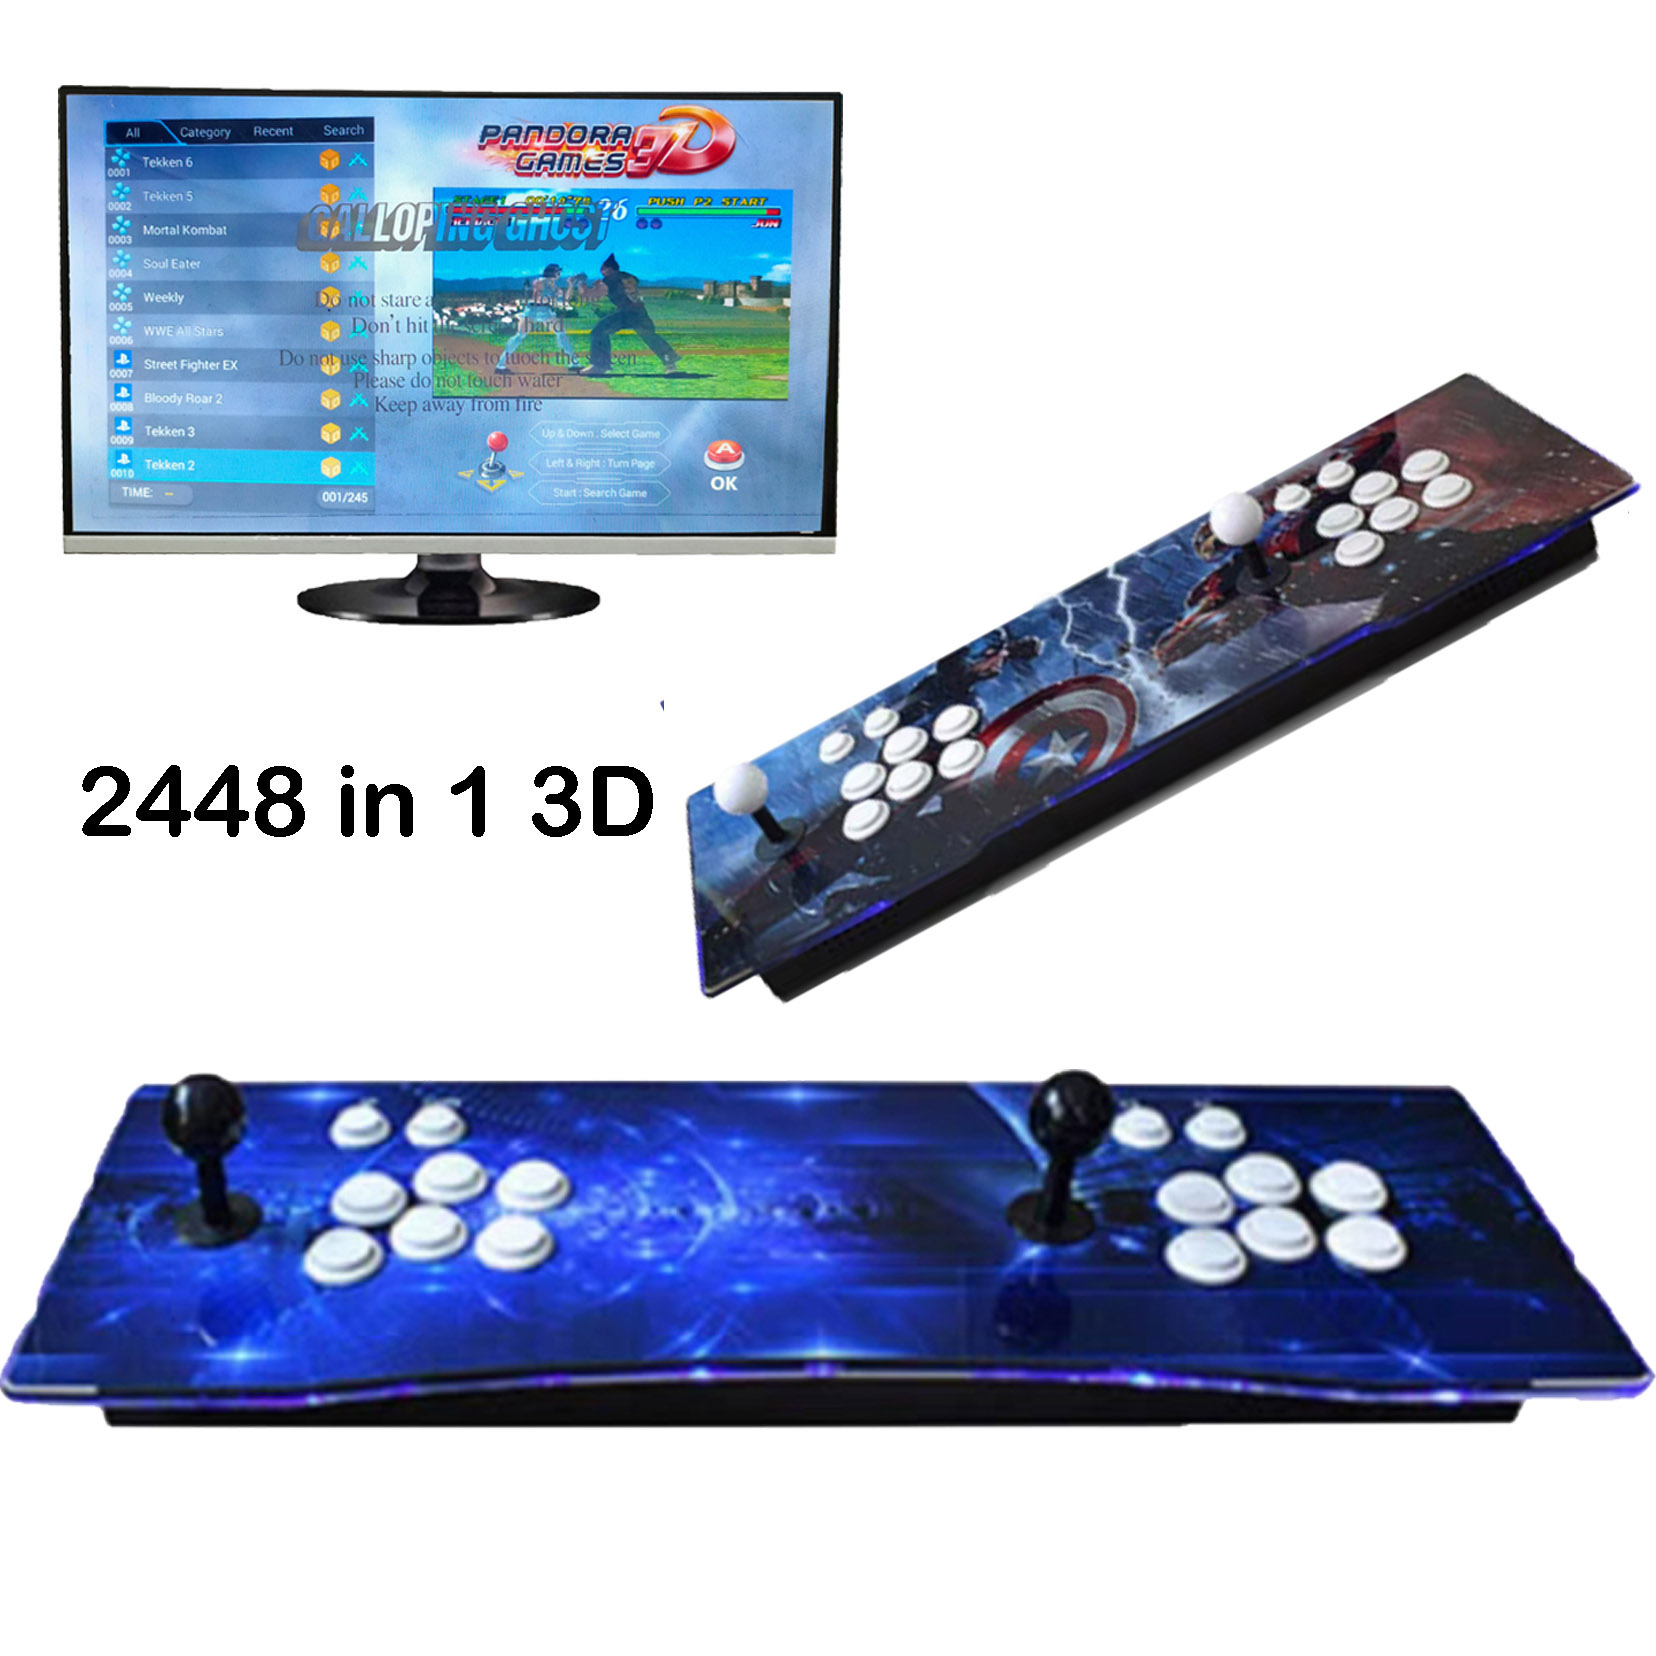 YOG Pandora Box 3D Arcade Box 2448 In 1 Wifi Version No Delay Joystick 8 Buttons PCB Controller Retro Arcade Console